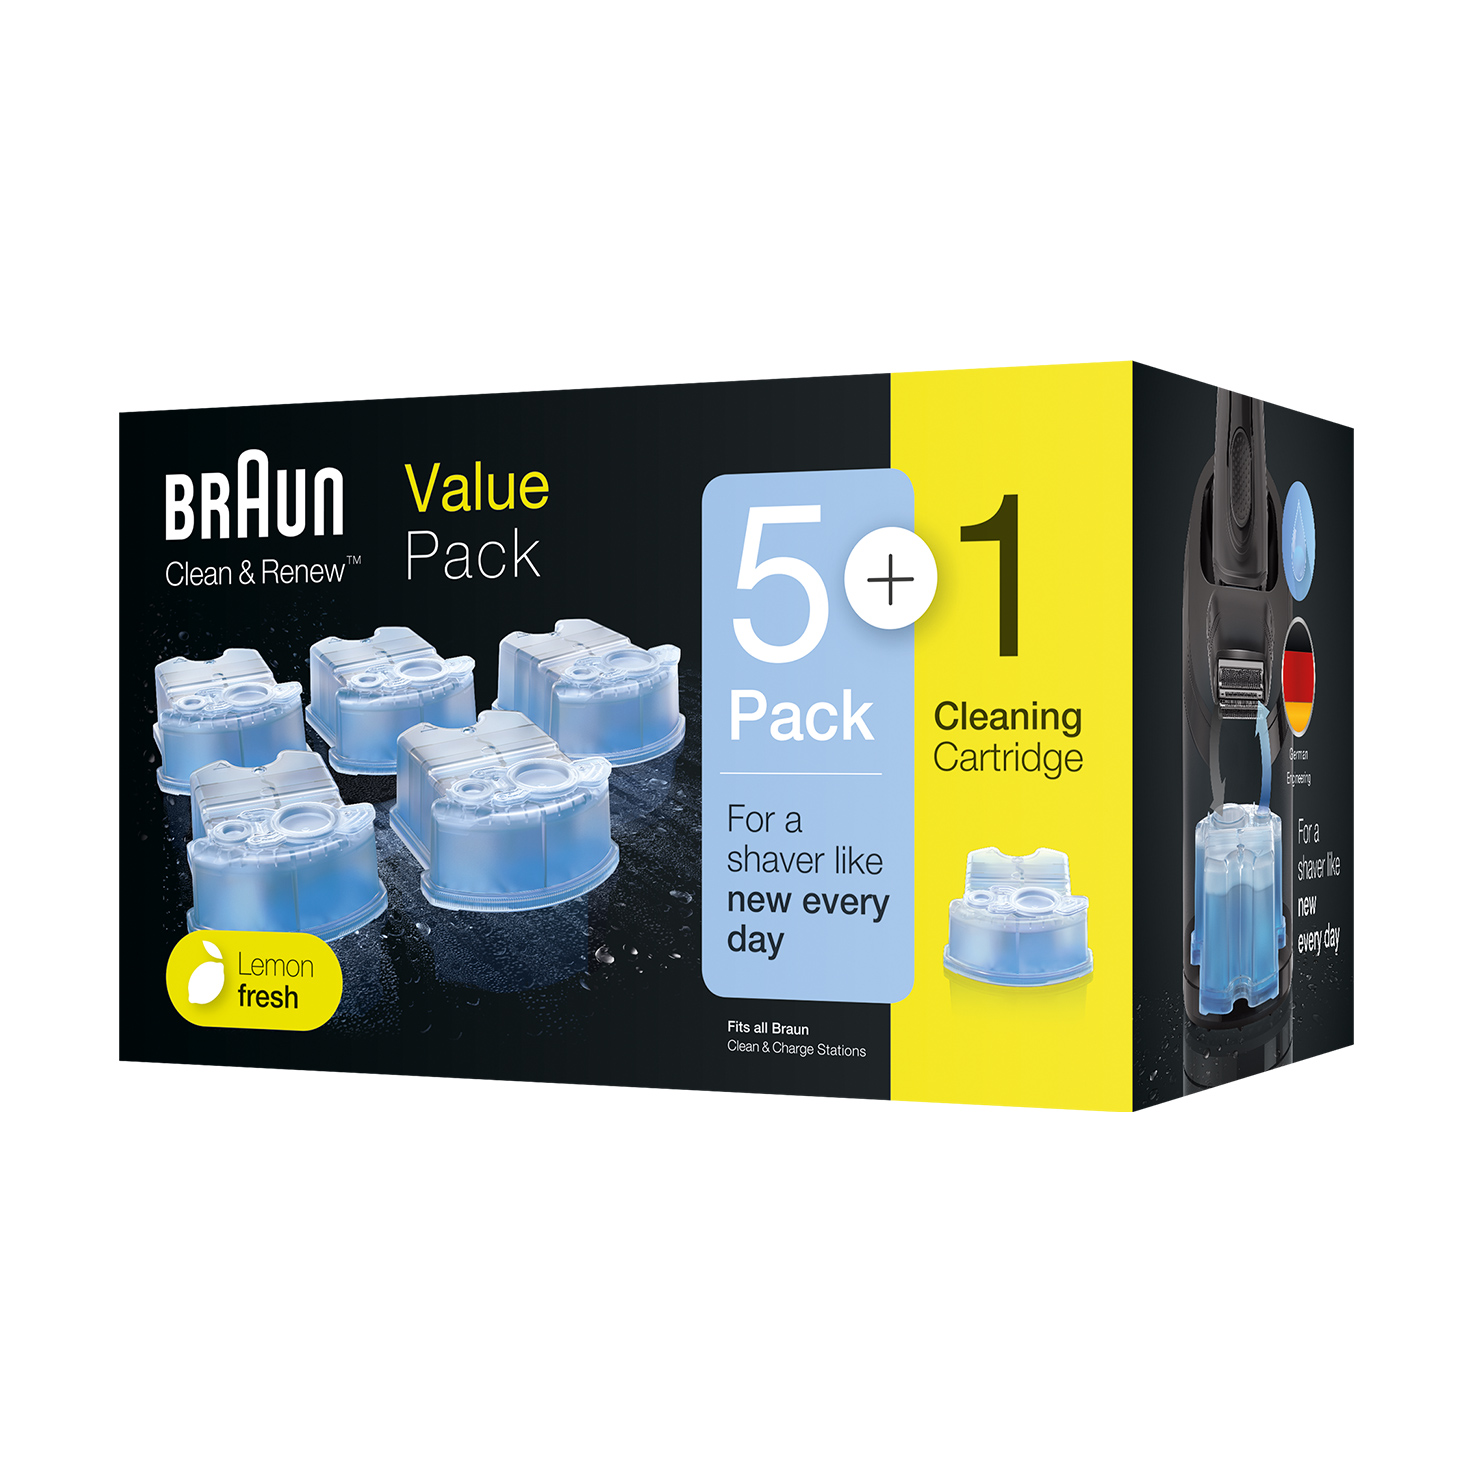 Braun Clean & Renew refill cartridges  CCR - 5+1 Pack